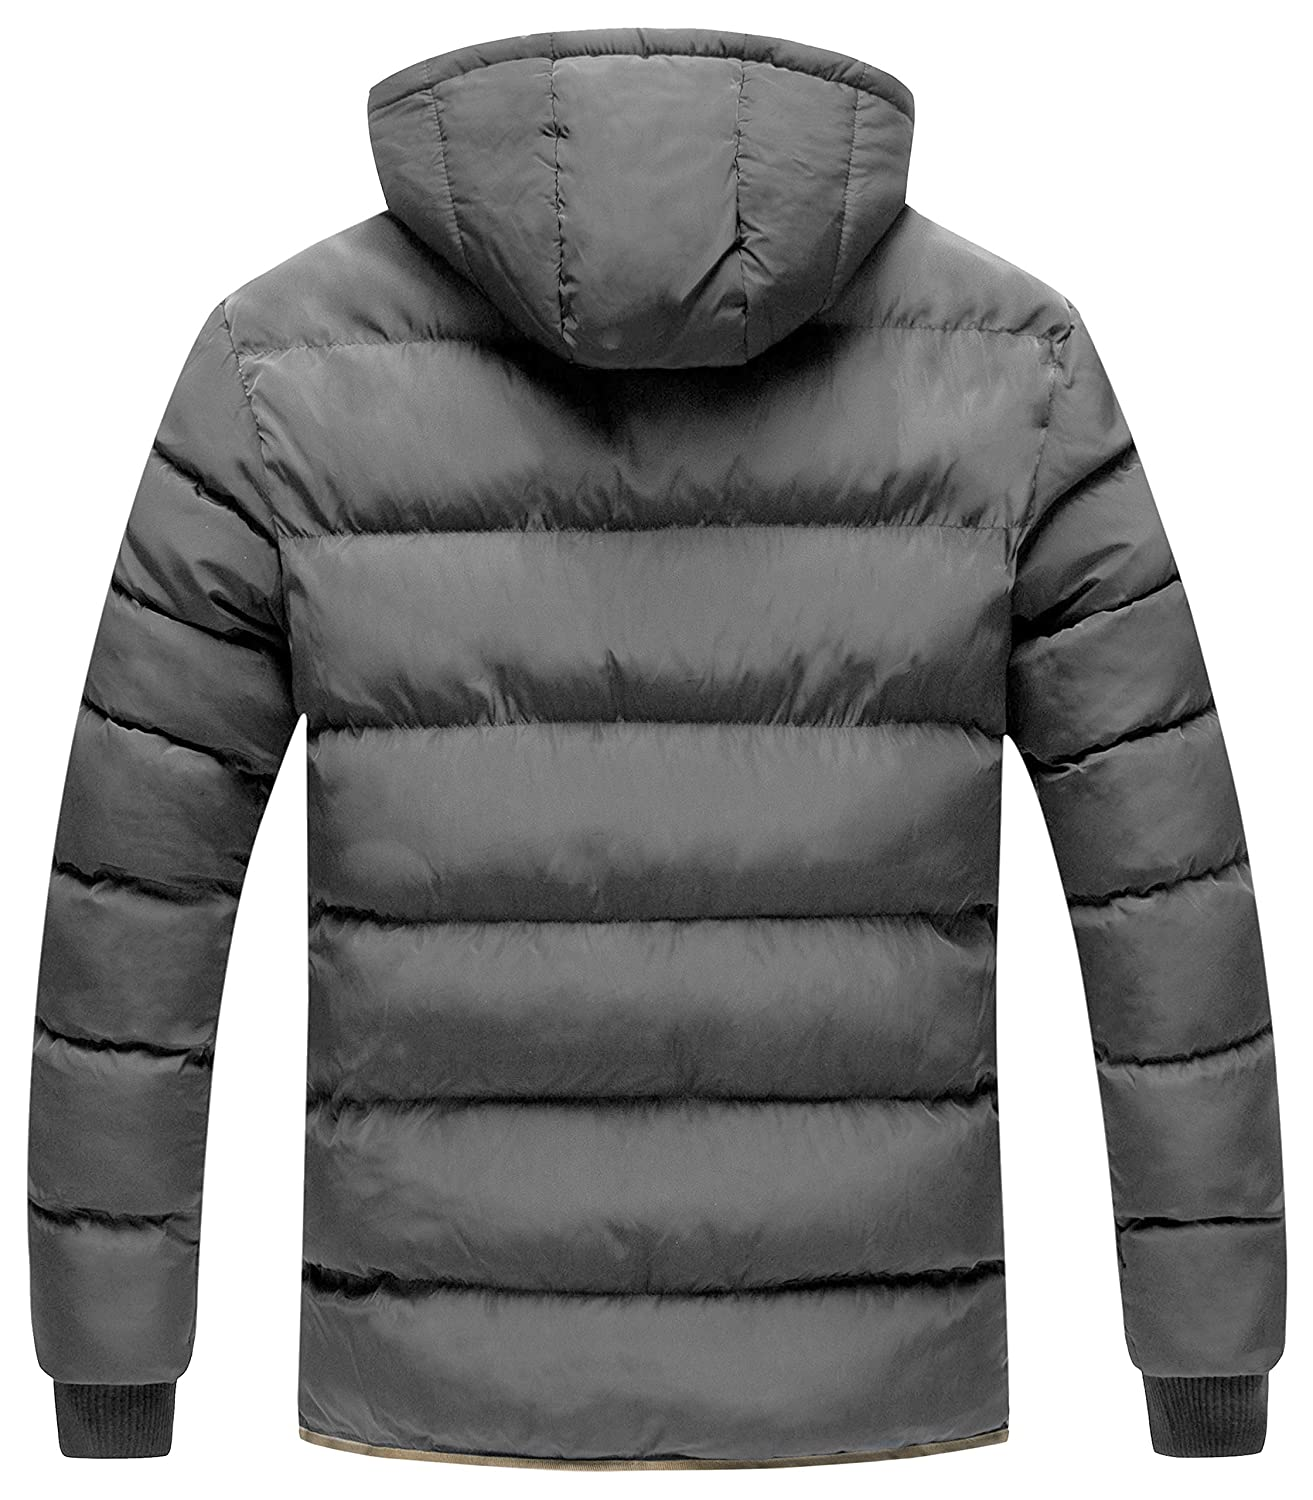 Zshow Mens Winter Thicken Jacket Warm Double Hooded Quilted Cotton Coat Fashion Men Casual Parka Down Padded Zipper